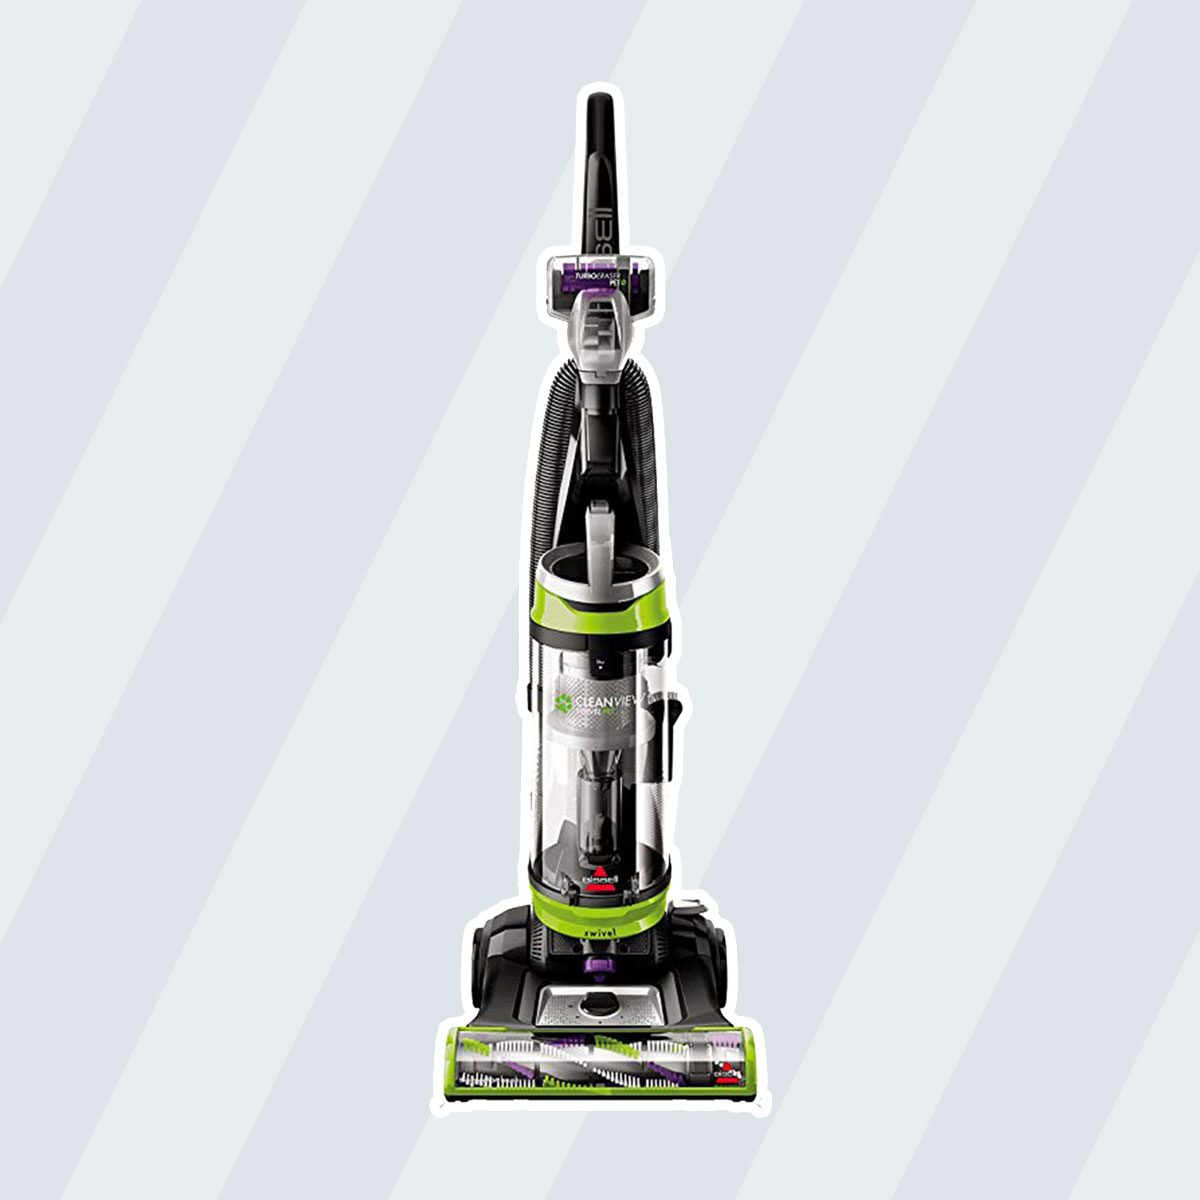 Bissell Cleanview Swivel Pet 2252 Upright Bagless Vacuum